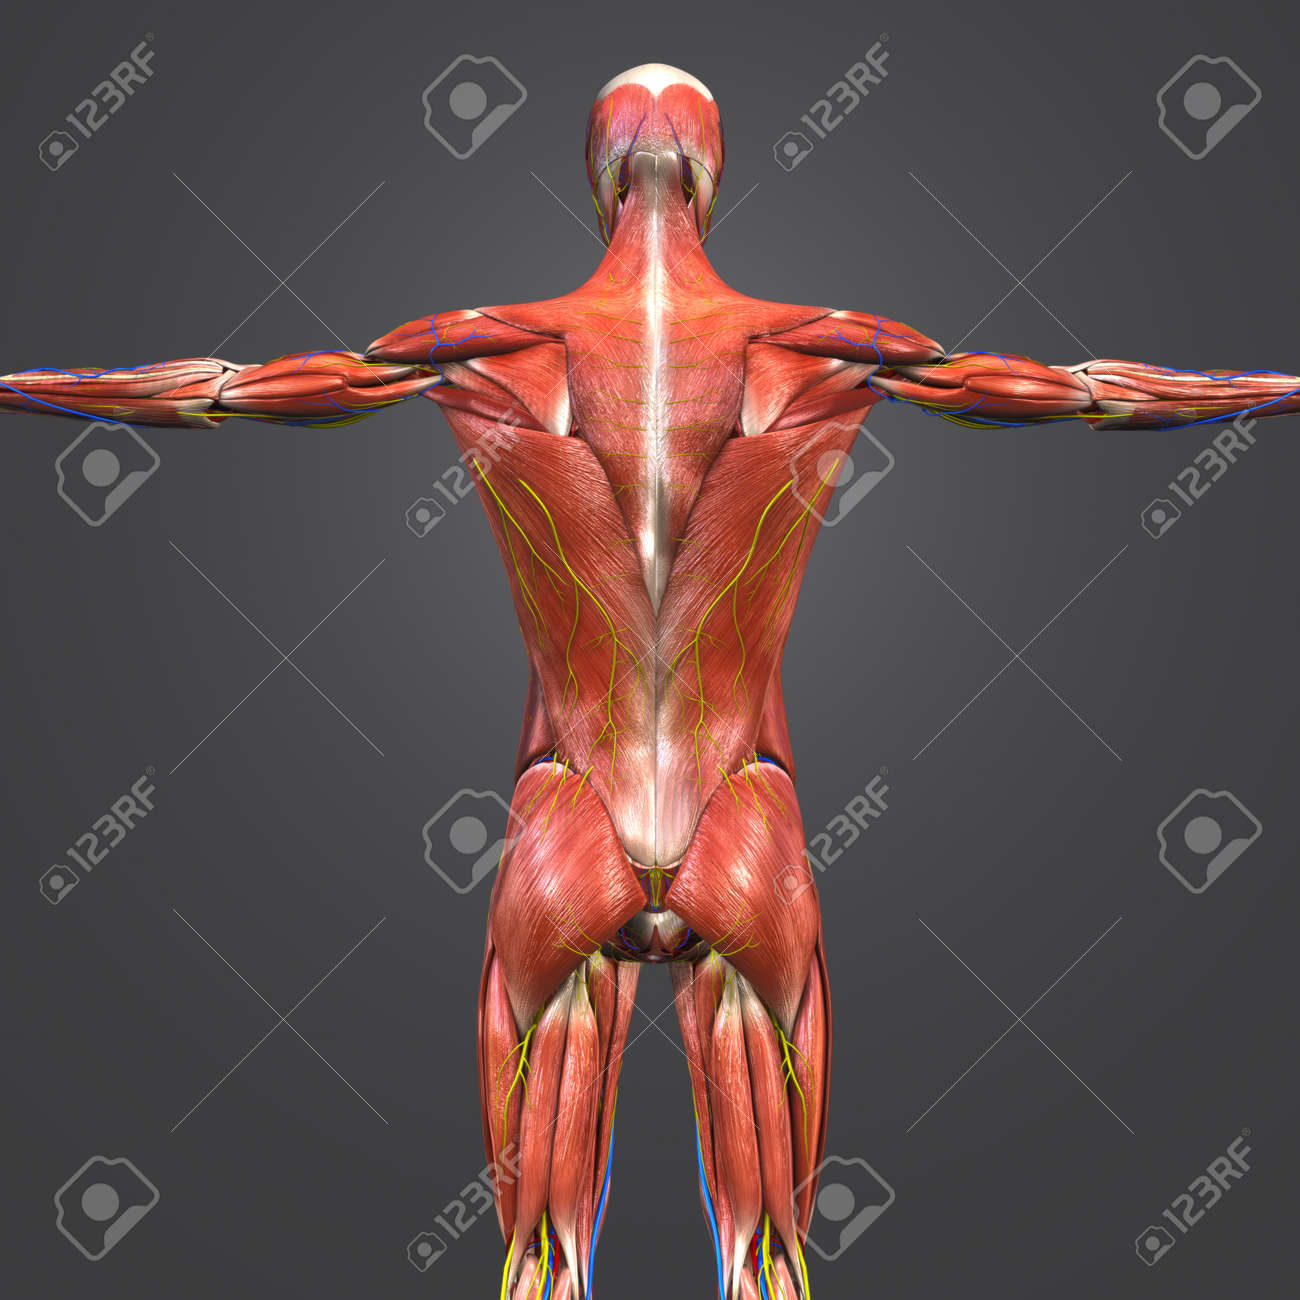 Human Muscular Anatomy With Blood Vessels And Nerves Posterior